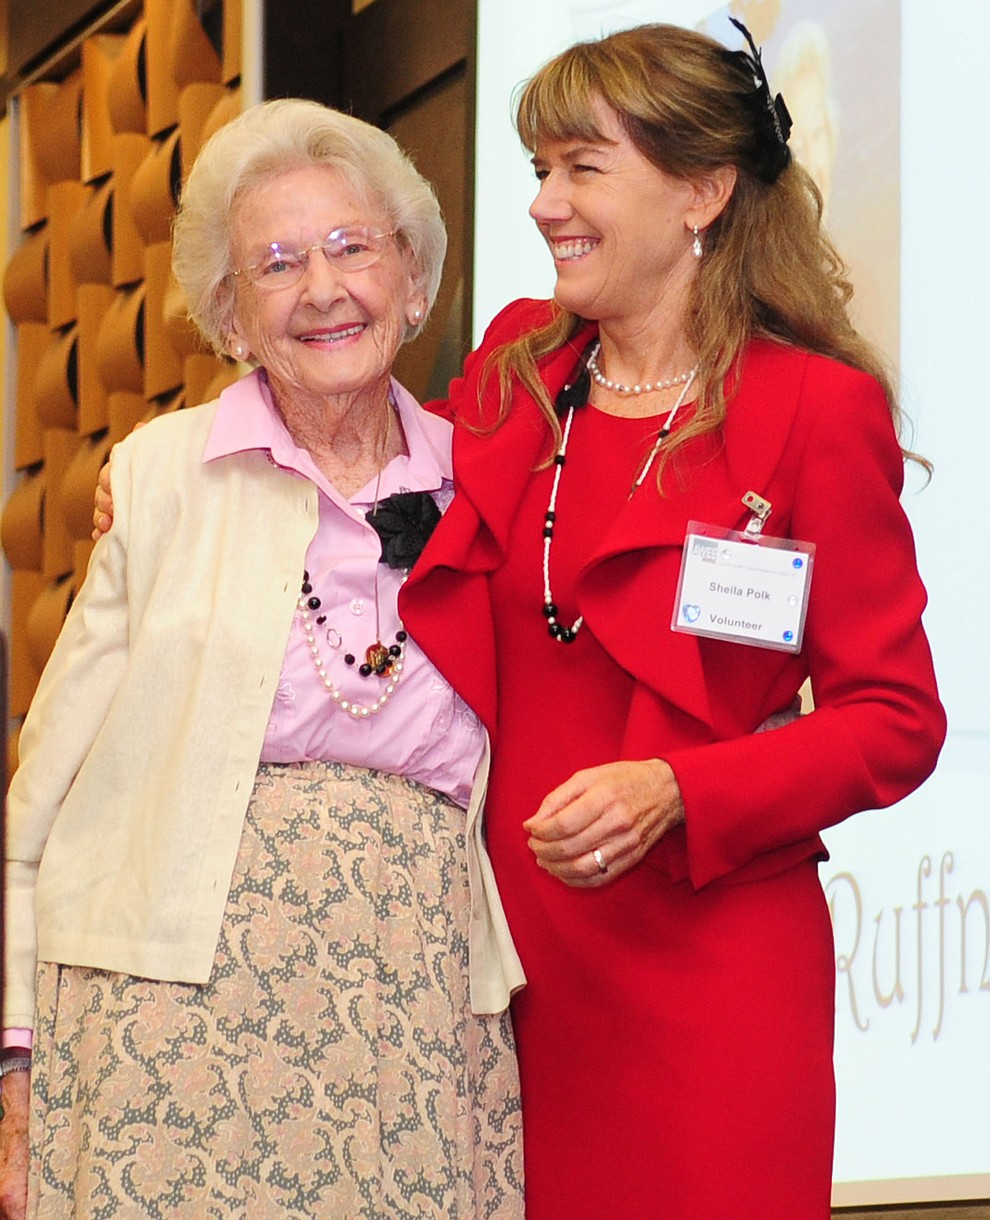 Sheila Polk, at right, congratulates Elisabeth Ruffner on her receiving the Barbara Polk Spirit of Volunteerism Award at AWEE's Annual Luncheon at the Prescott Resort Sept. 13, 2012. (Les Stukenberg/Courier file photo)